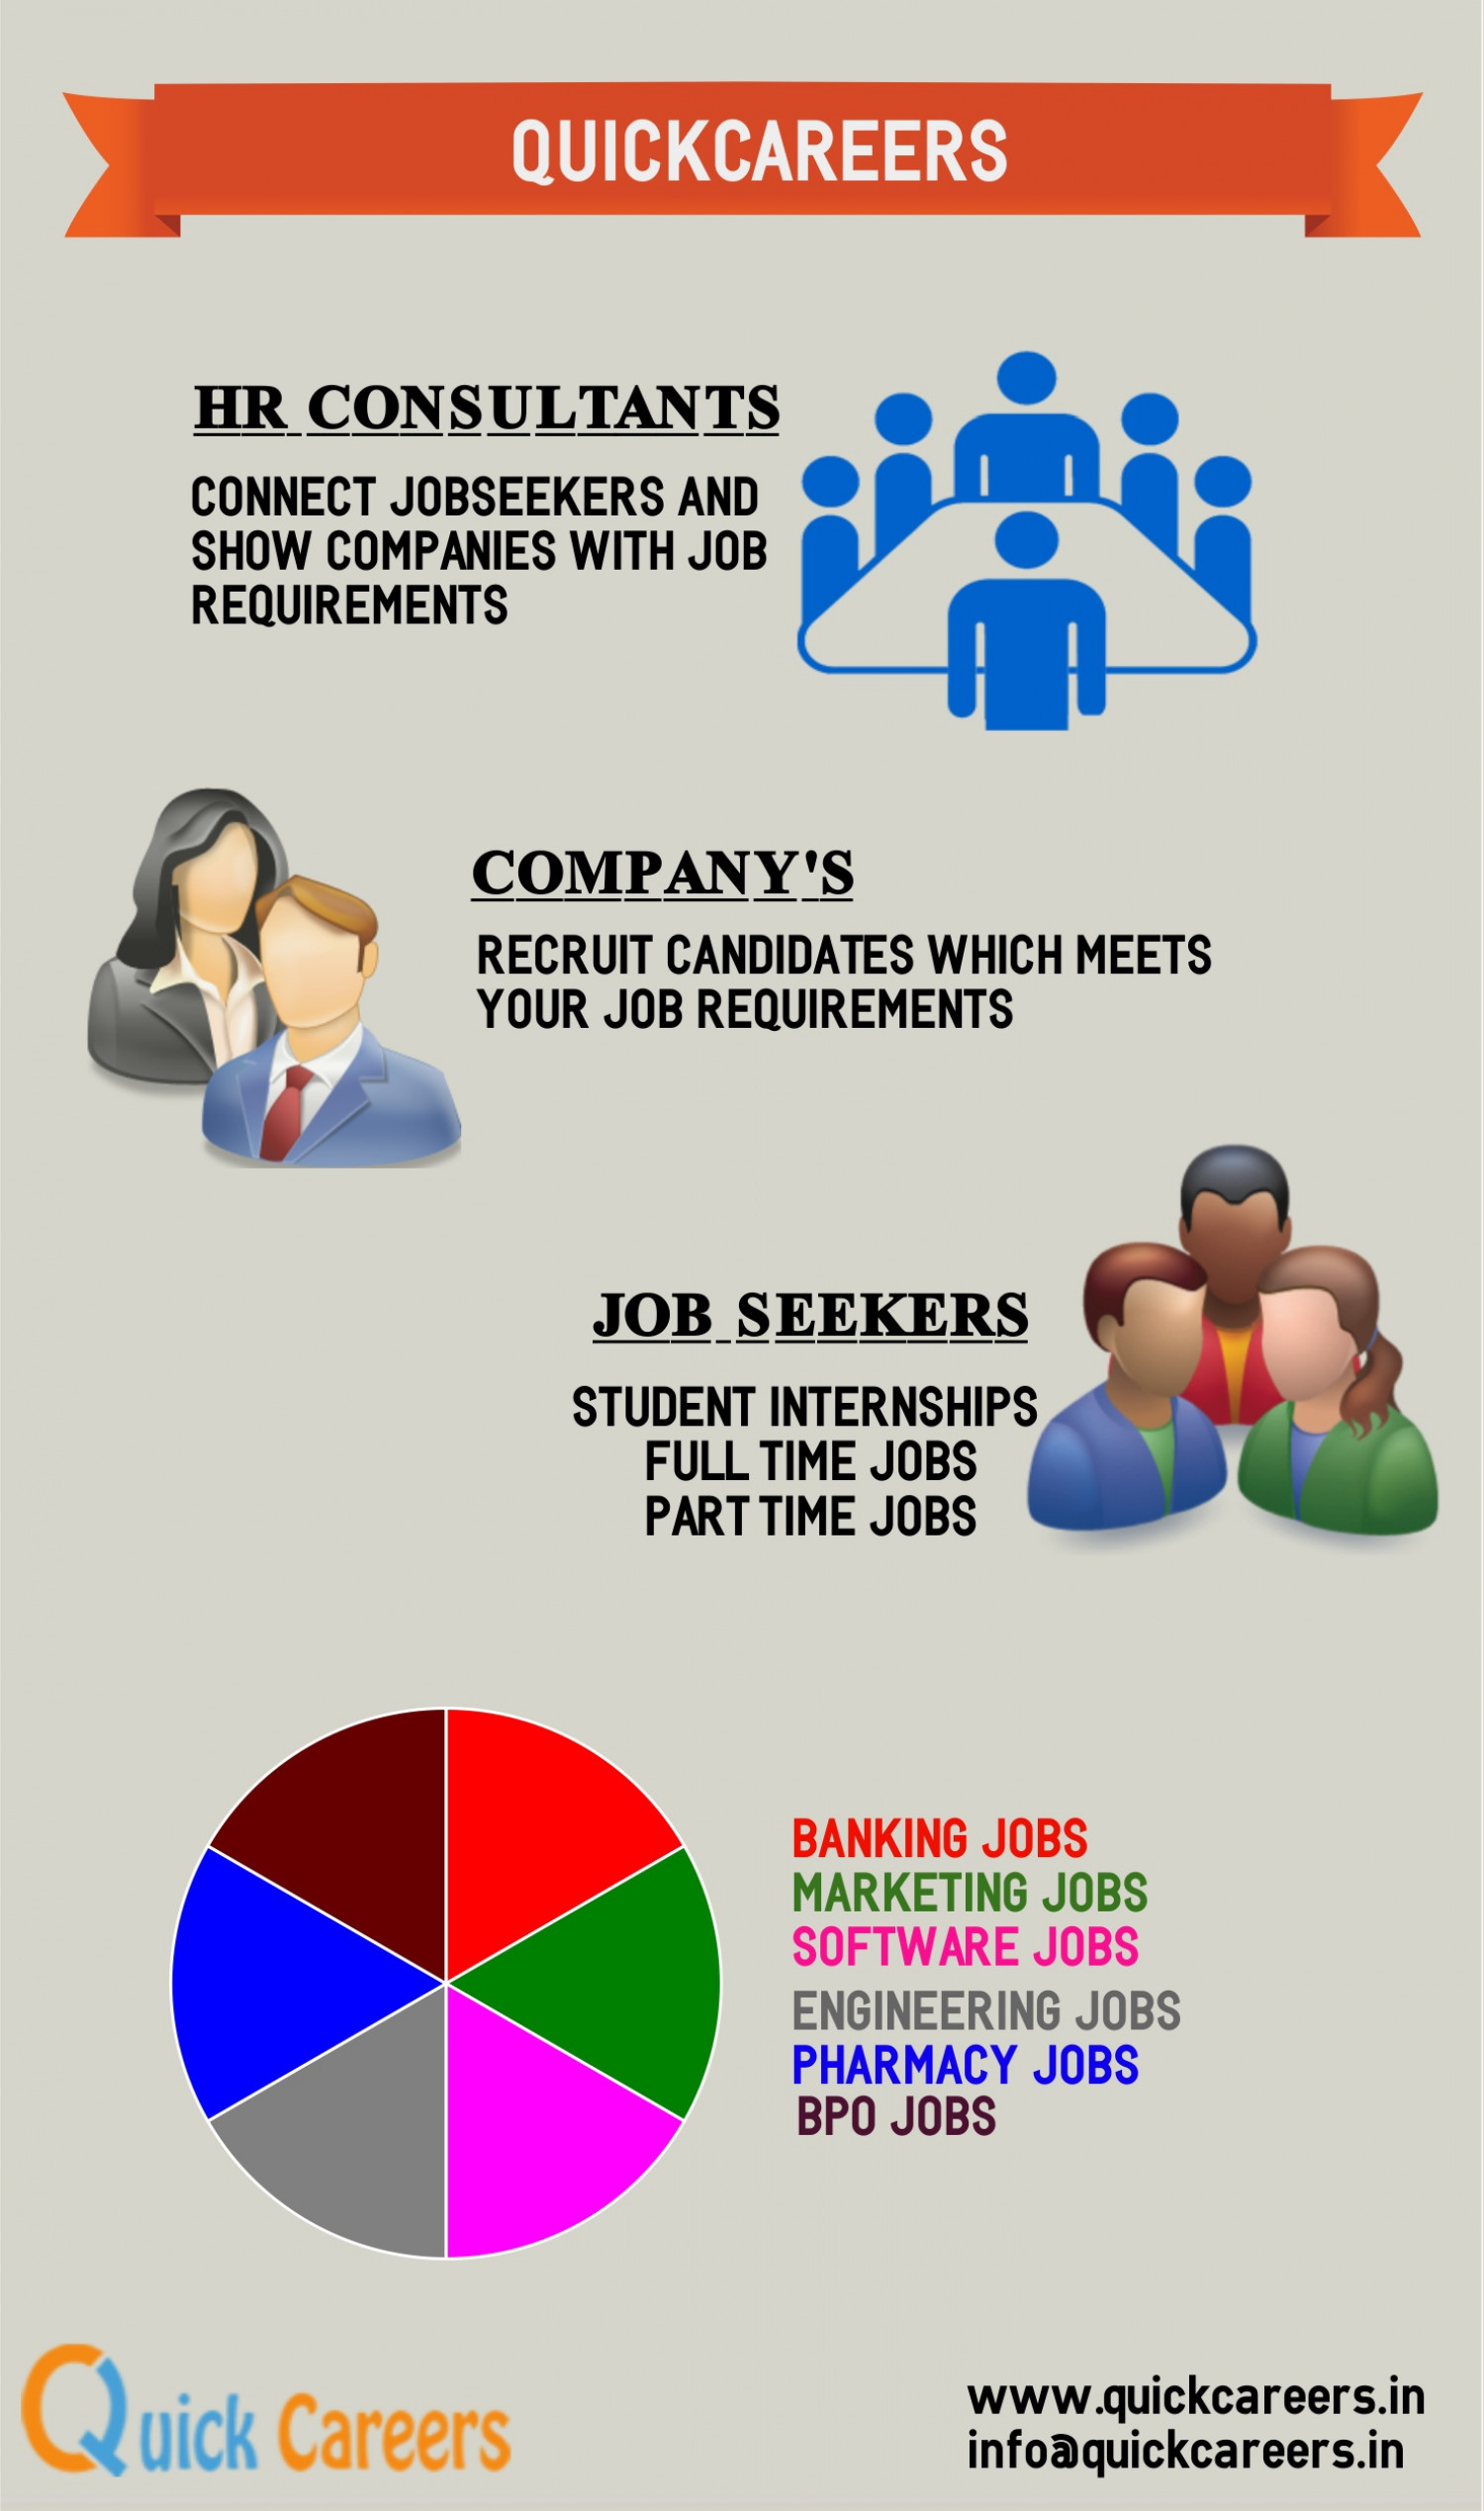 Make Recruitments Faster in Quickcareers.in Infographic